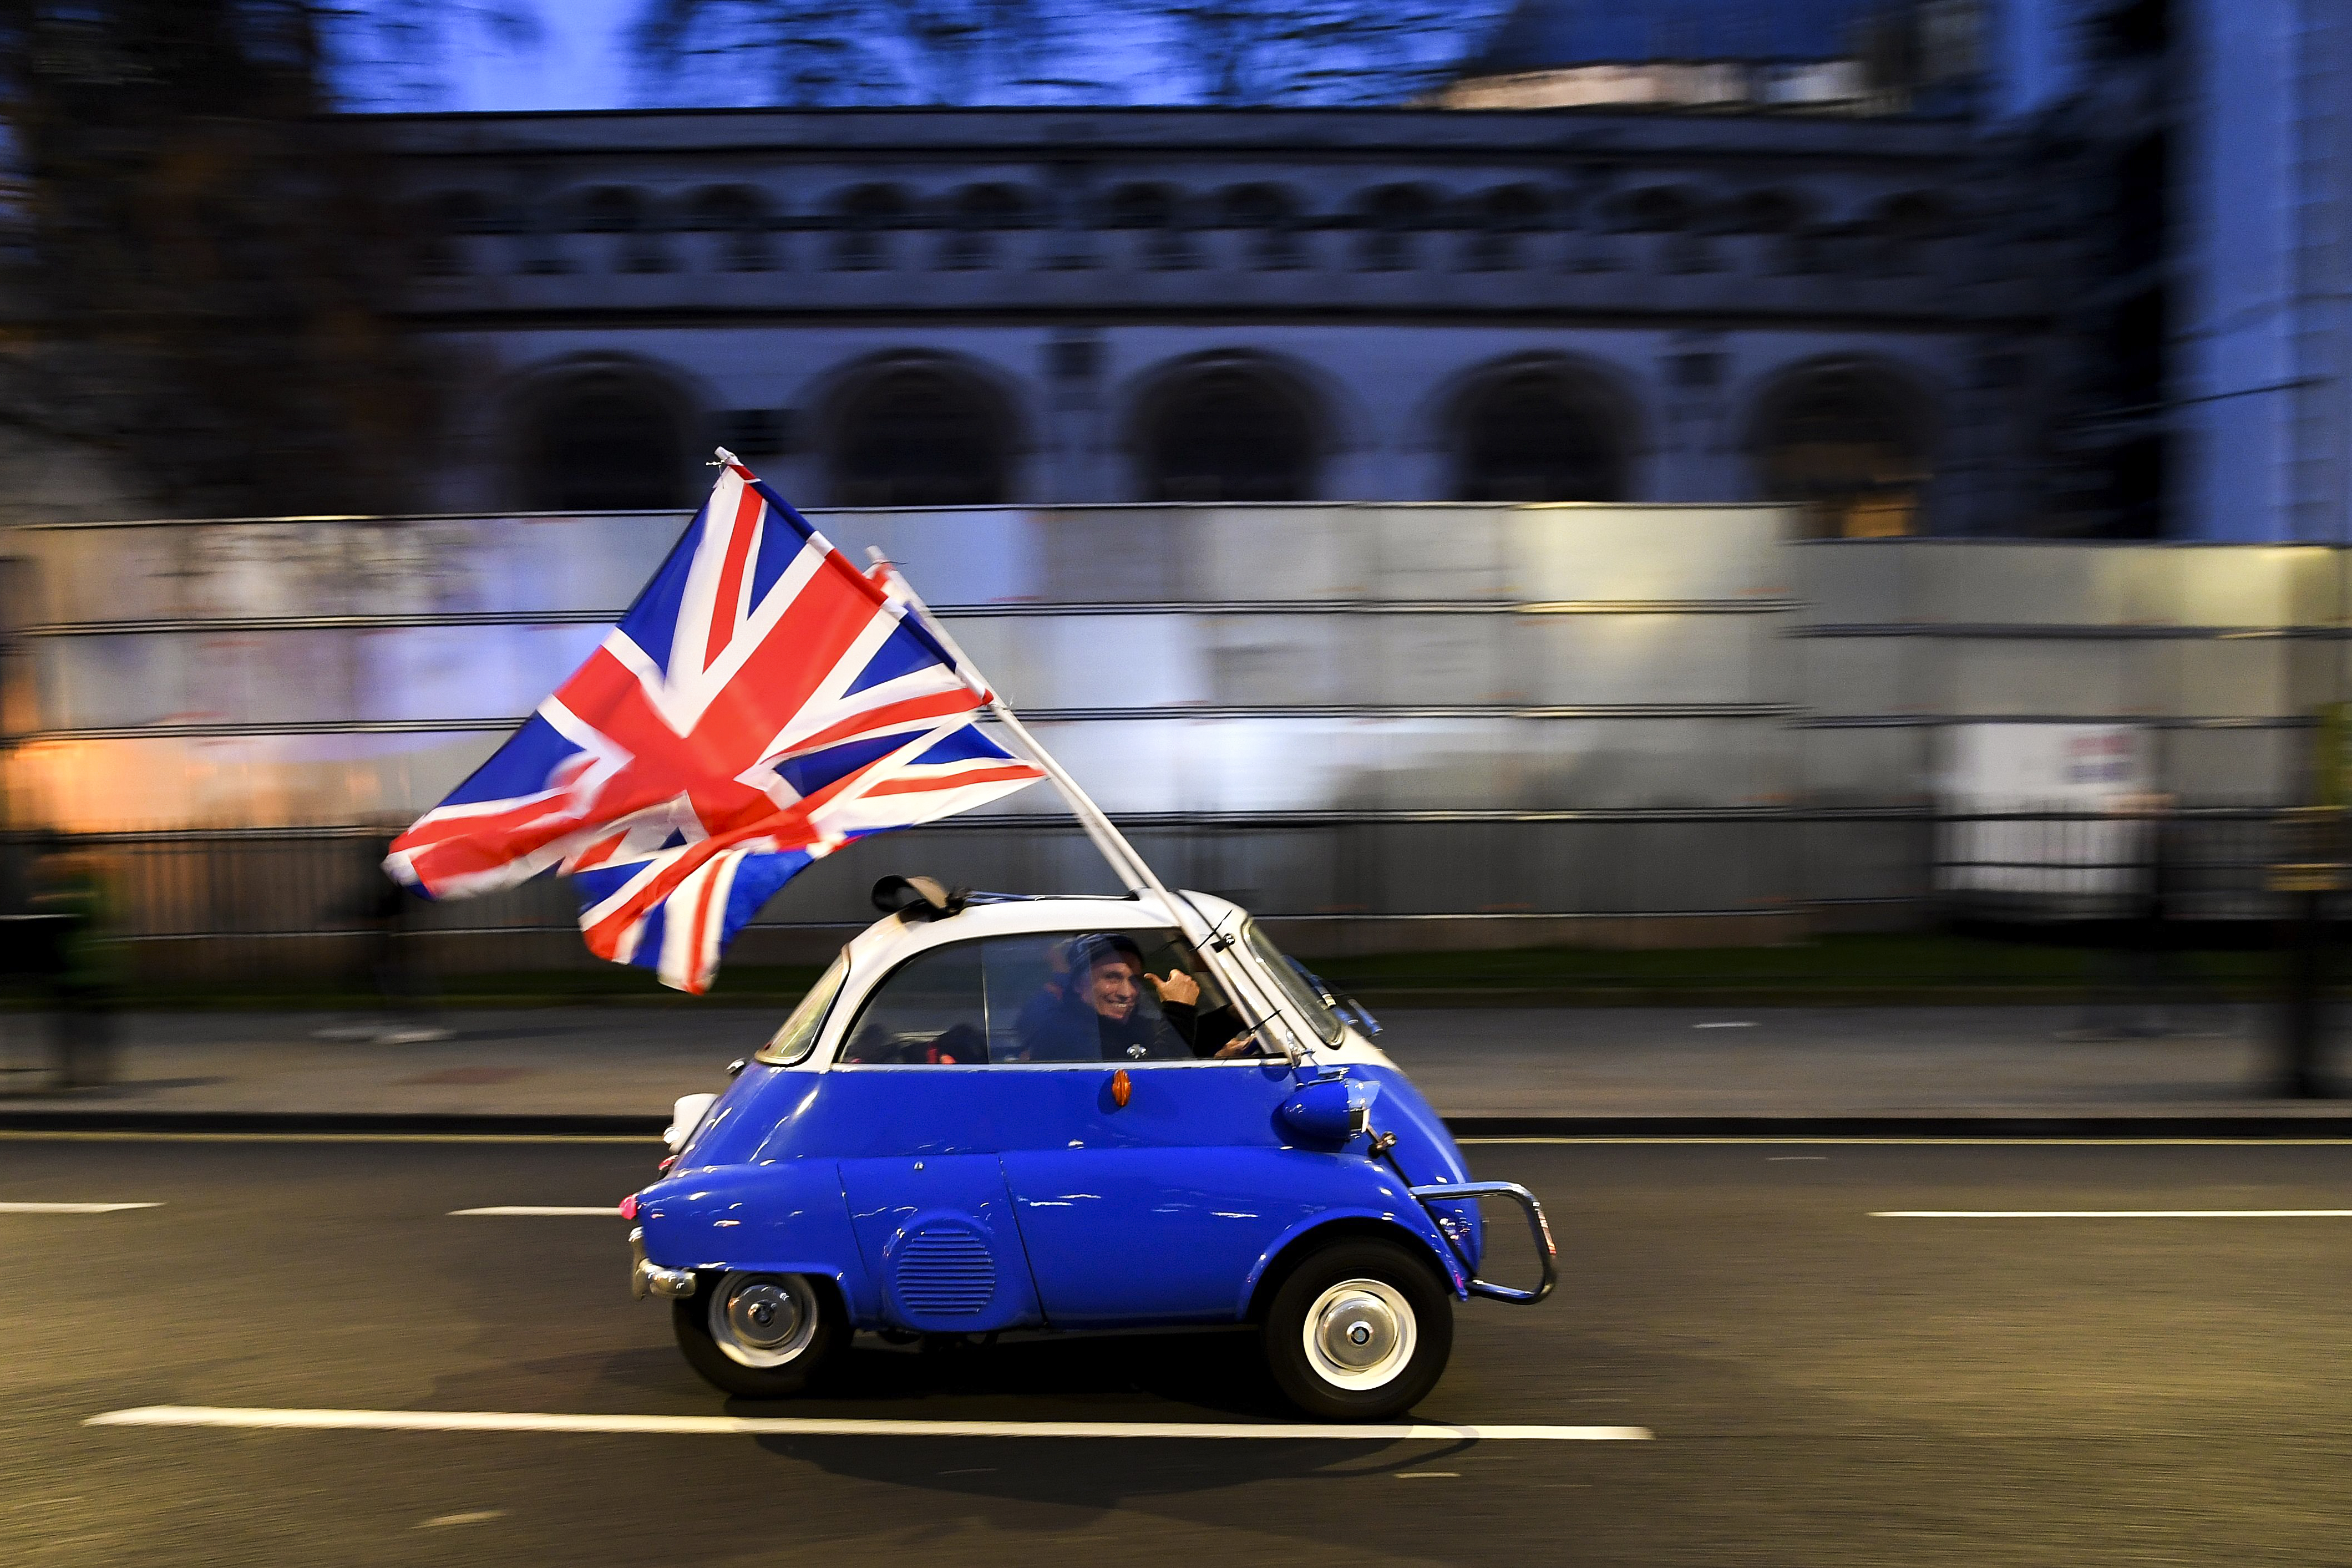 Britain has officially left the European Union. But what happens next?